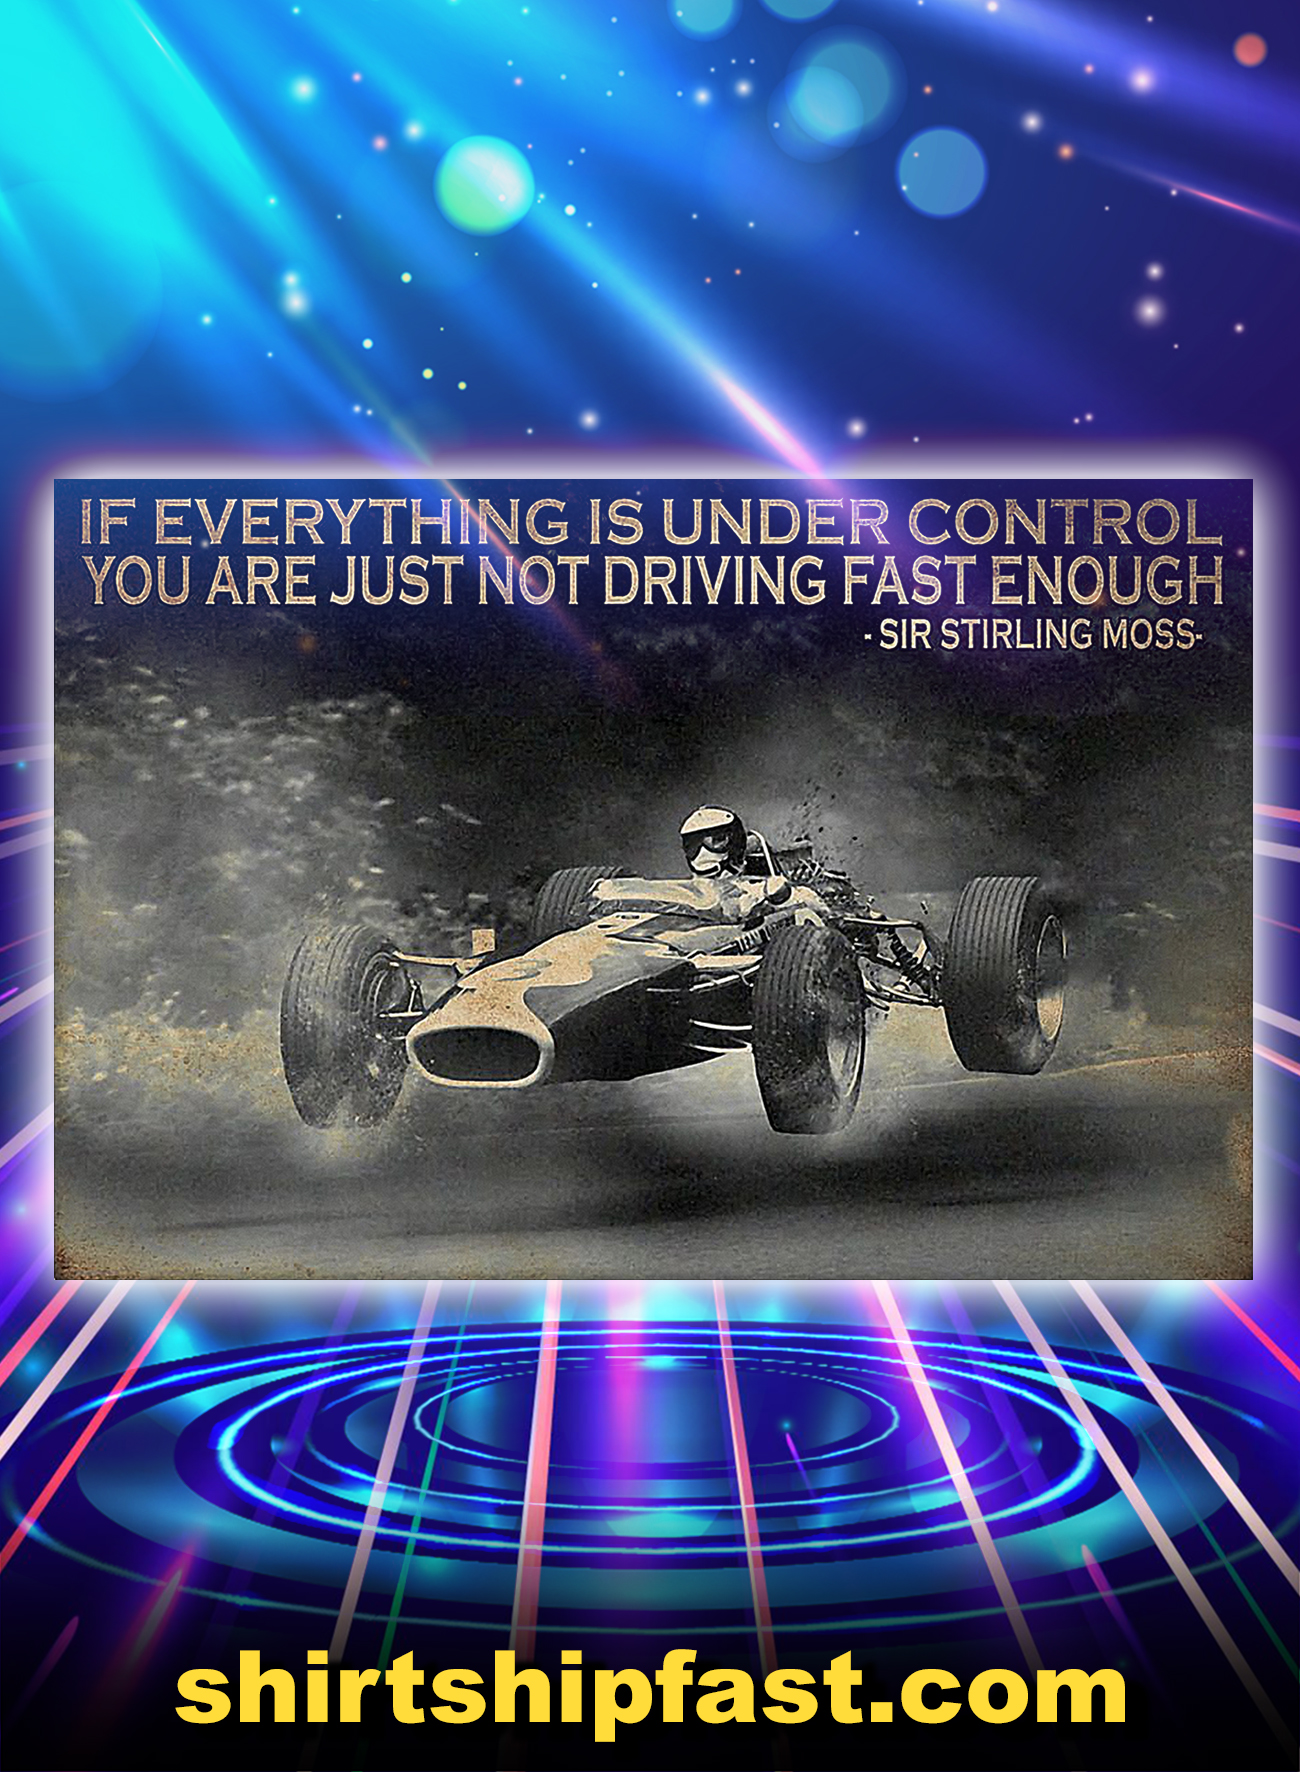 Sir stirling moss If everything is under control you are just not driving fast enough poster